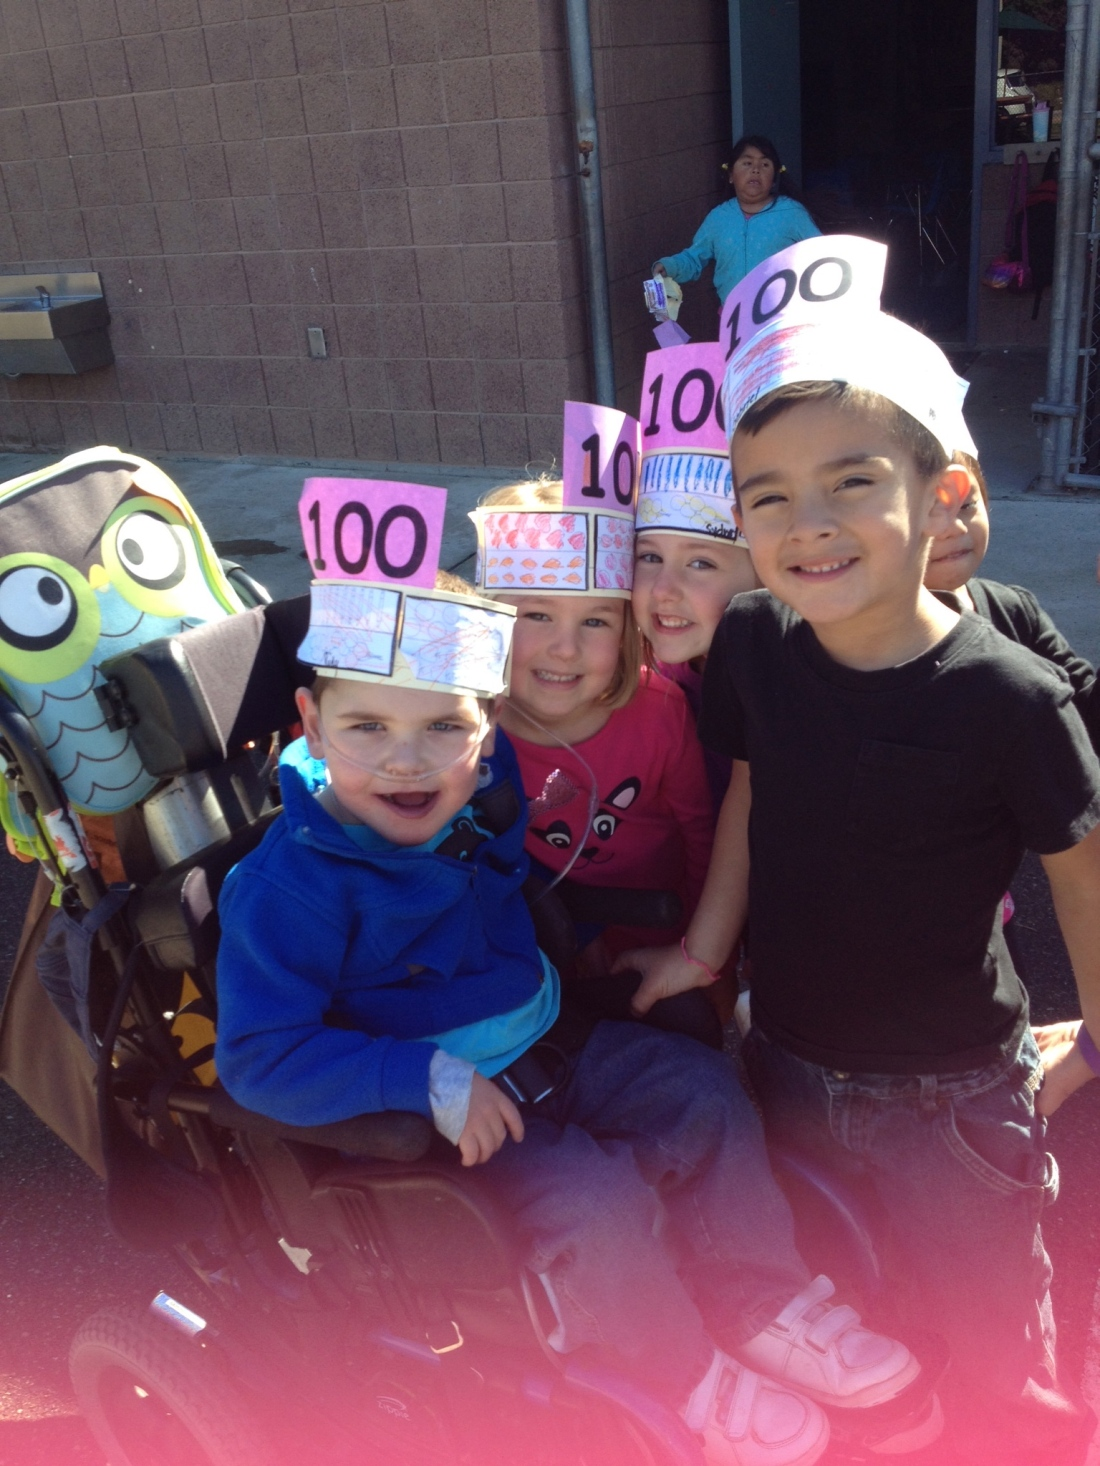 February 3, 2014 - 100 Days of School